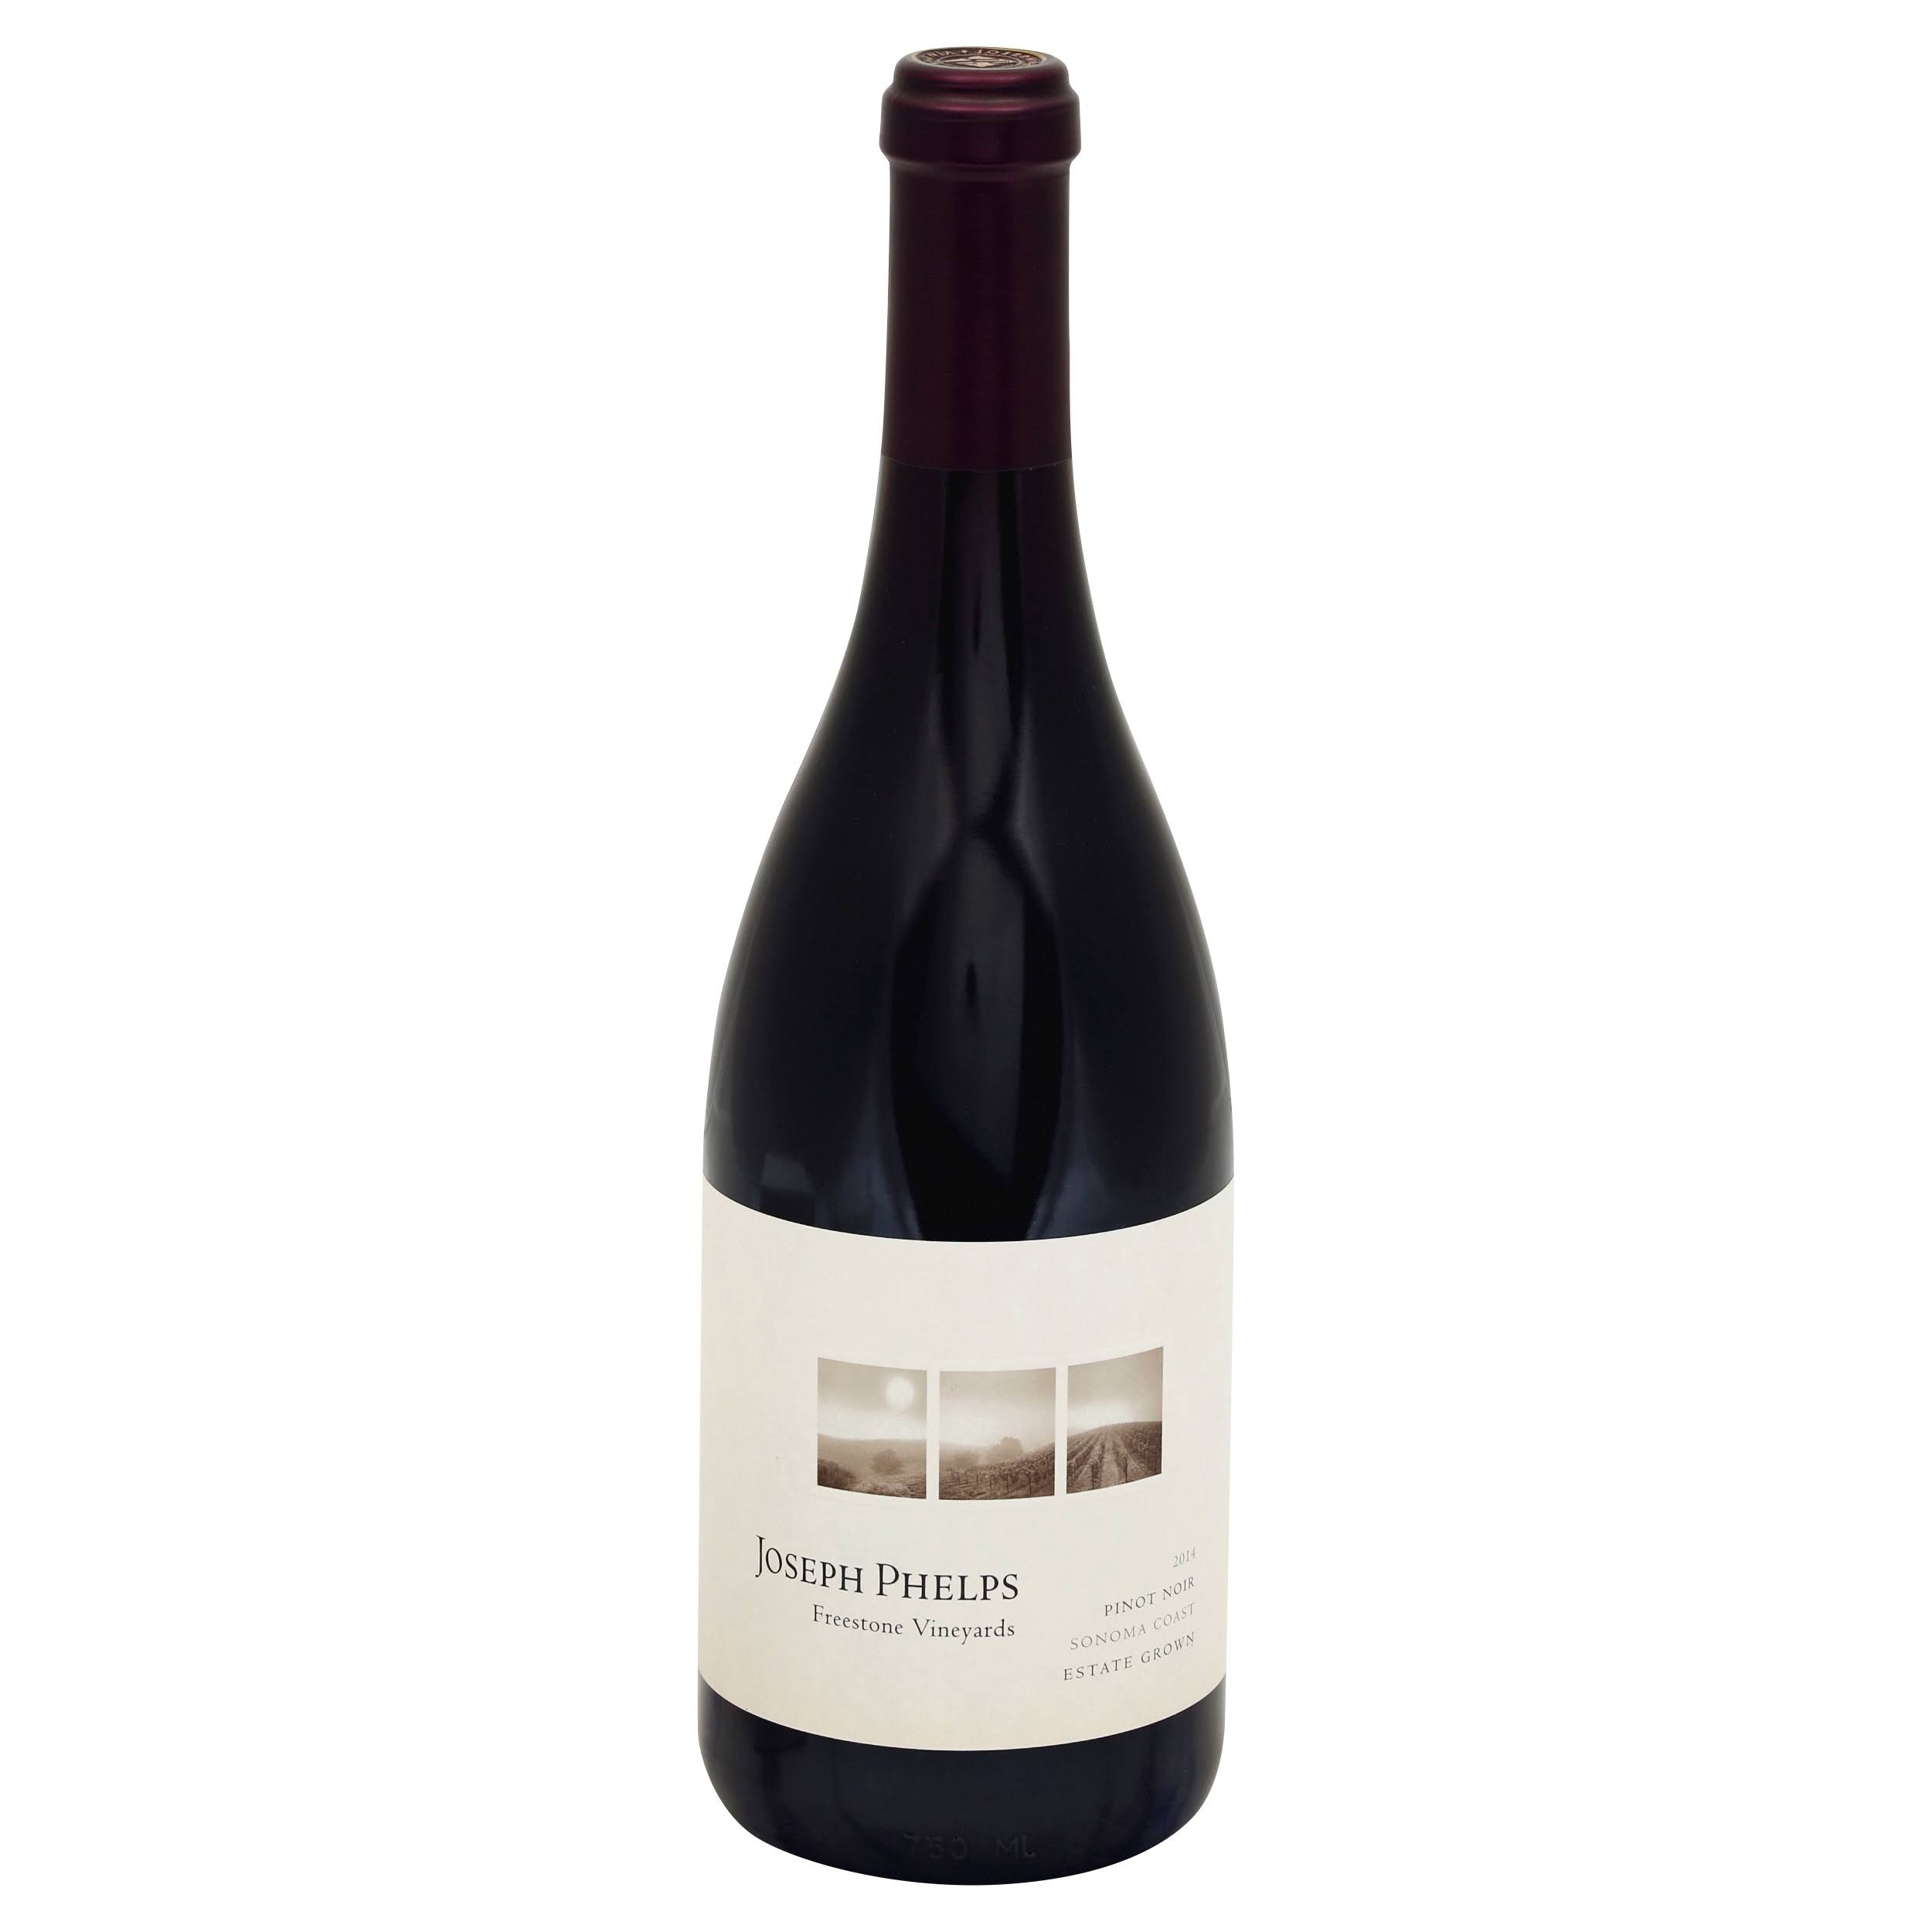 Joseph Phelps Freestone Vineyards Pinot Noir - 2014, Sonoma Coast California